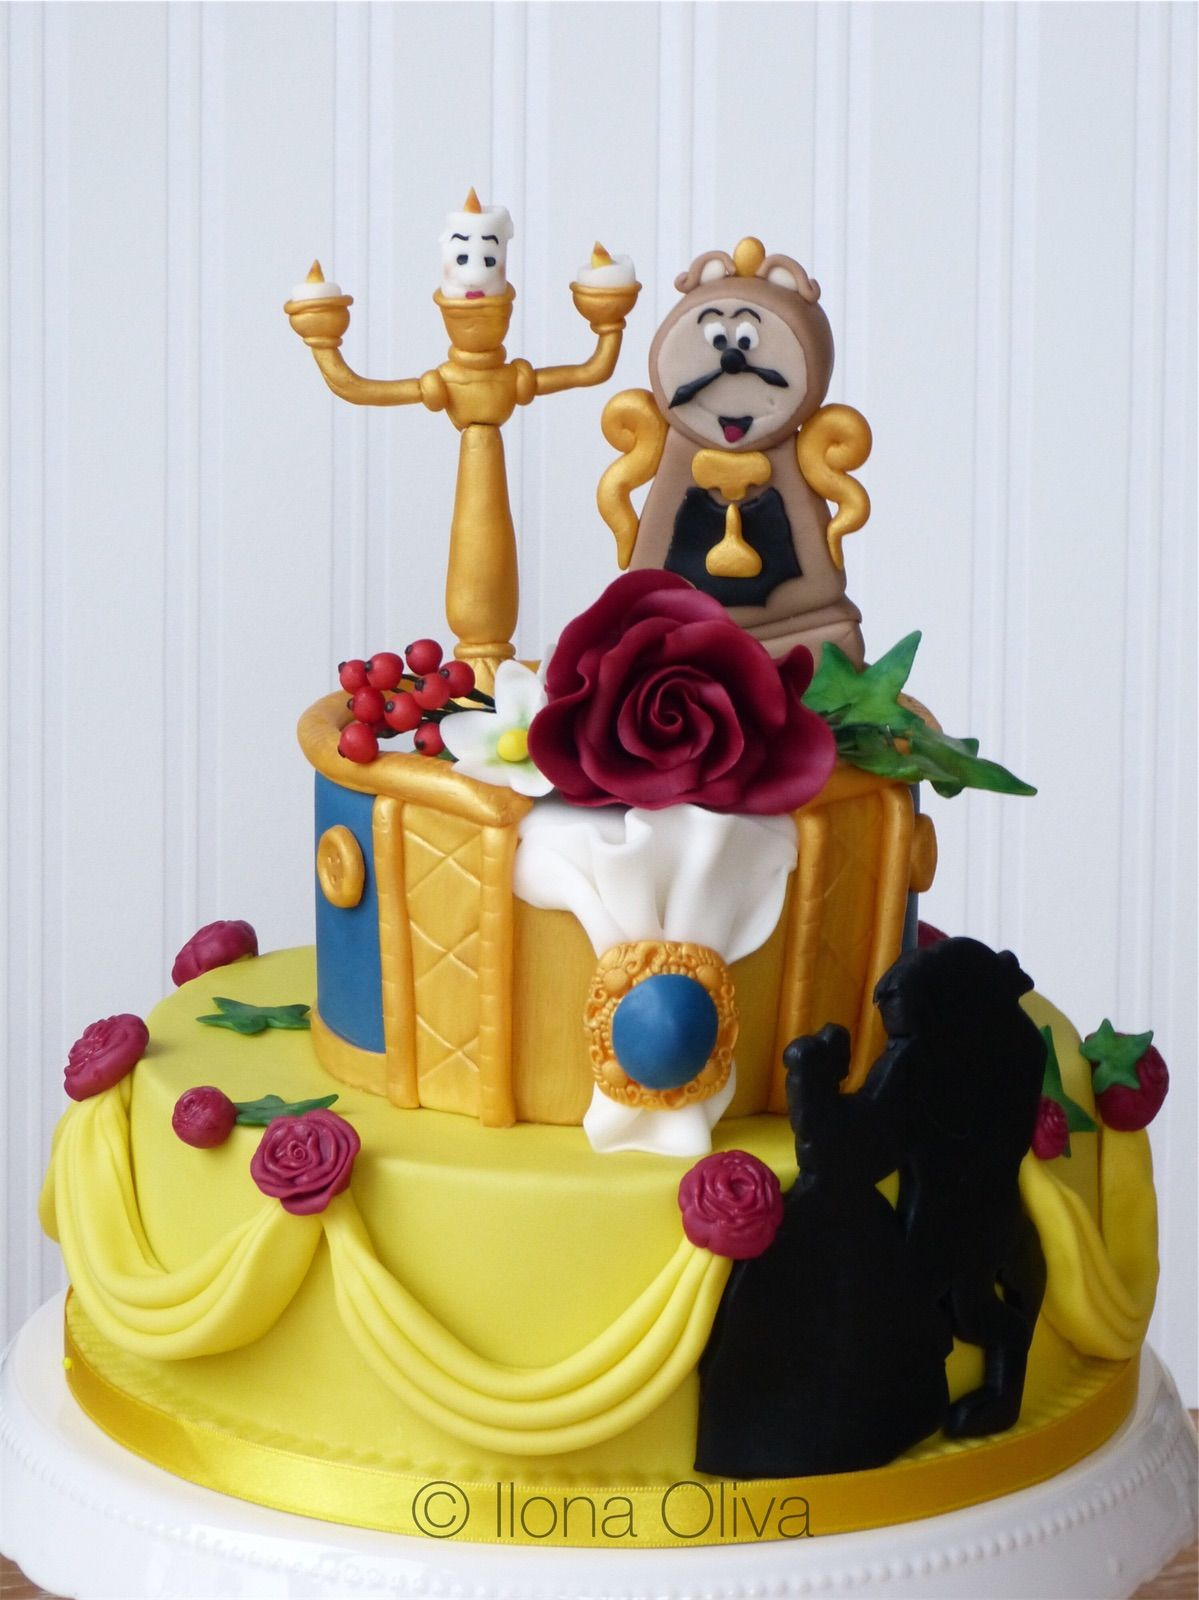 The Beauty And The Beast Cake Die Schone Und Das Biest Torte Die Schone Und Das Biest The Beast Torten